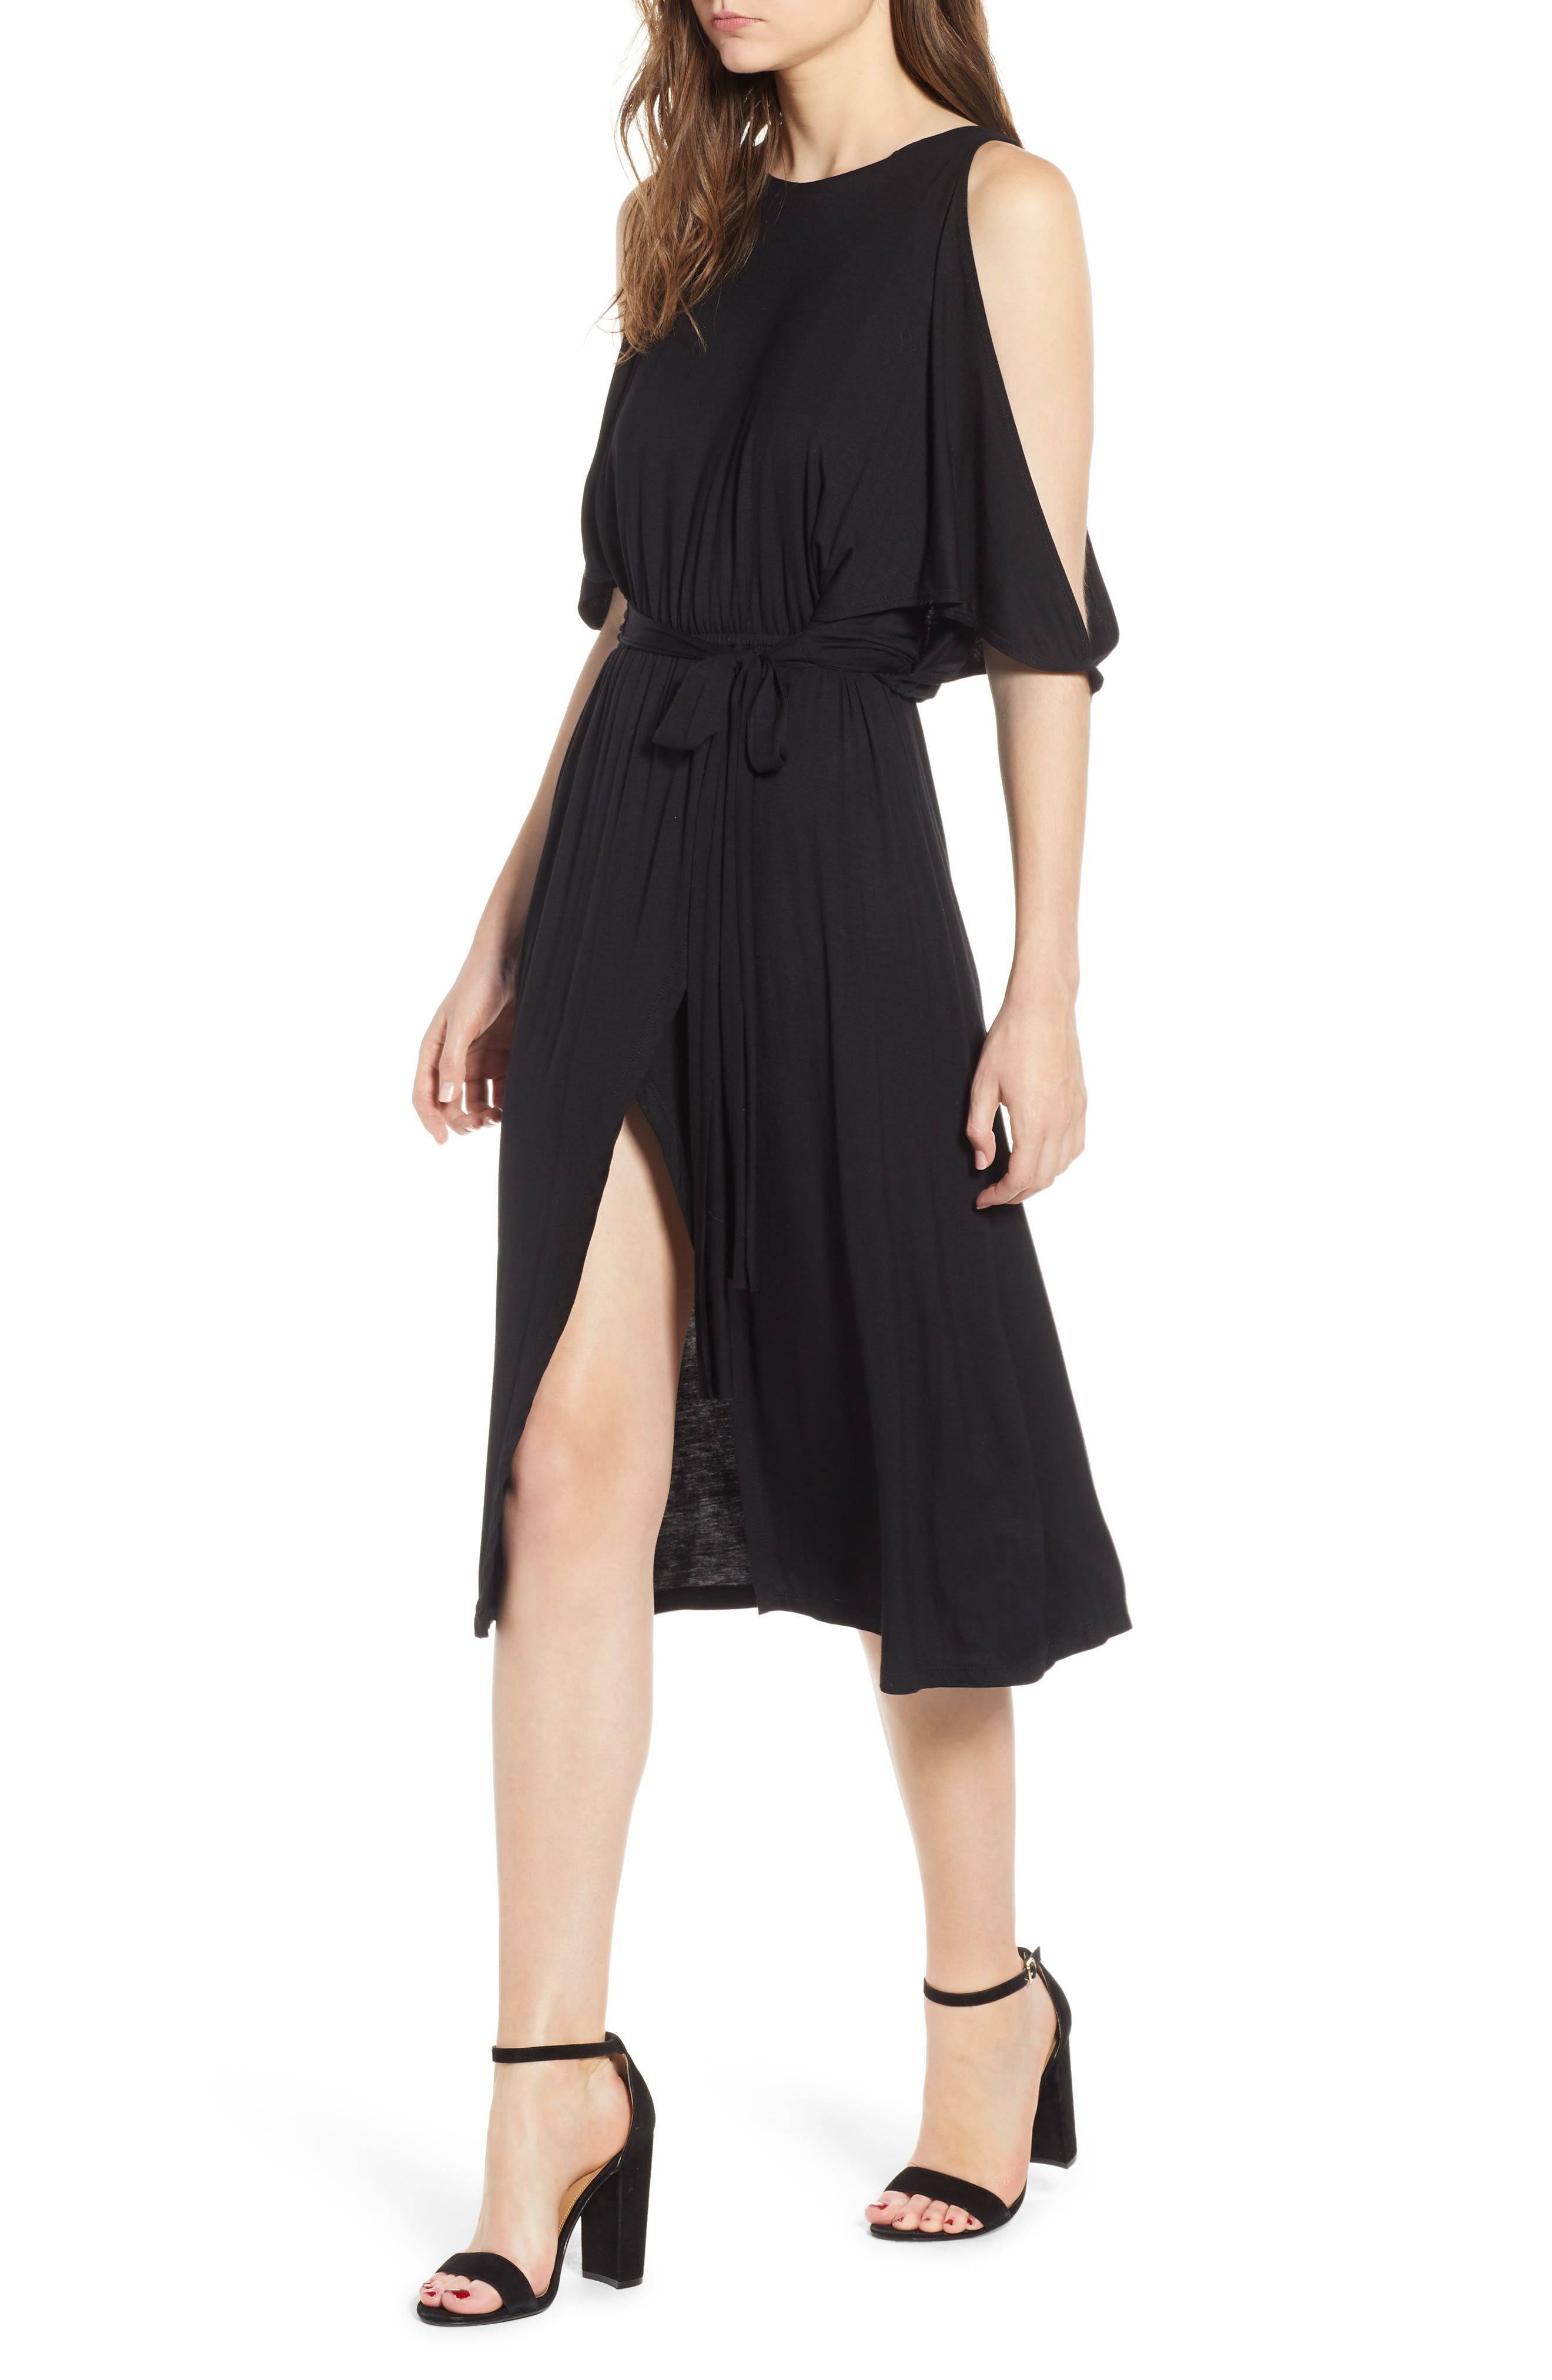 Bishop + Young Slit Sleeve Wrap Style Dress,                             Main thumbnail 1, color,                             001